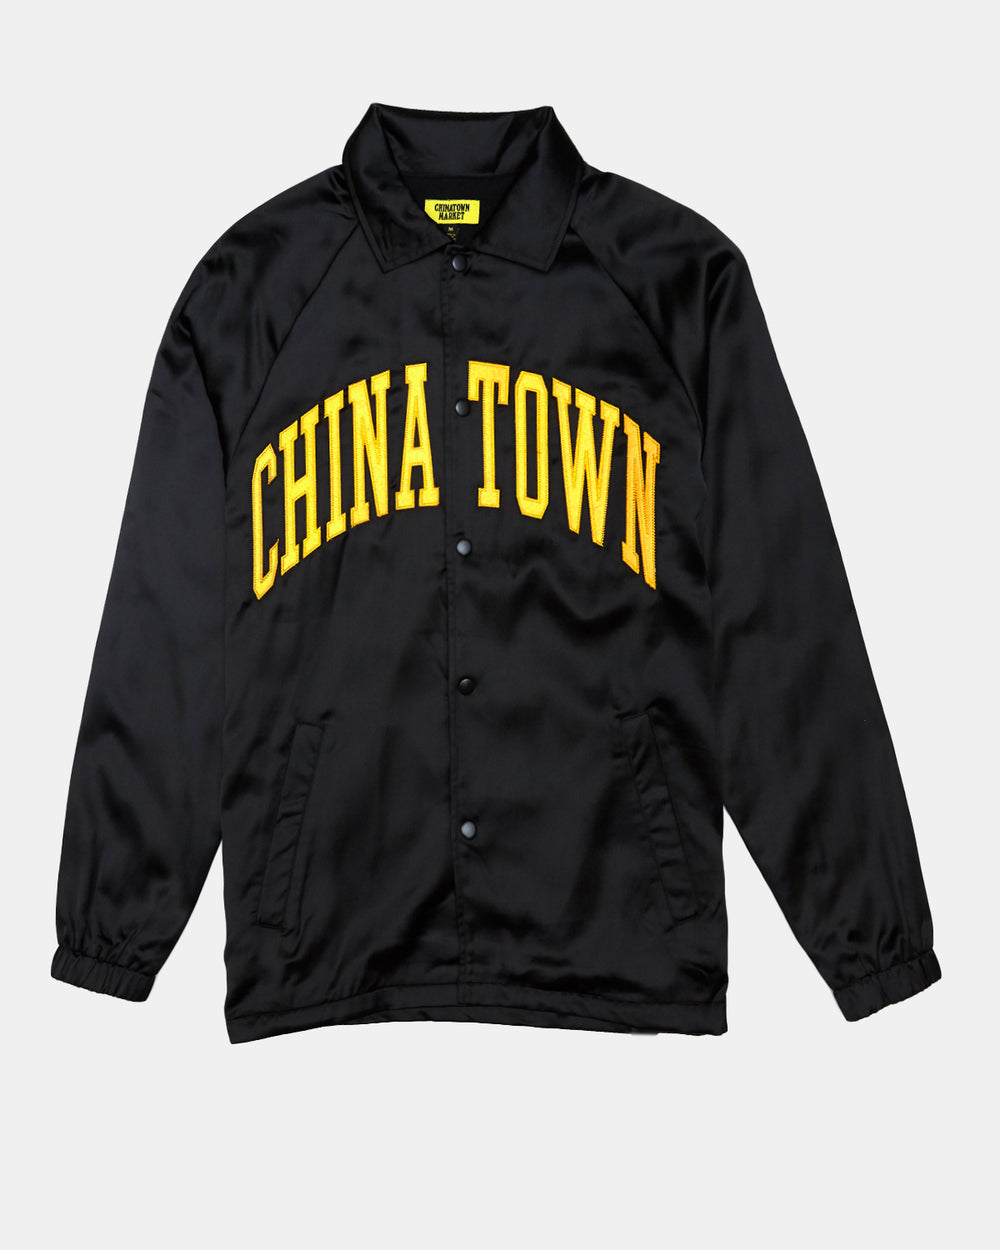 Chinatown Market - Satin Coach Jacket (Black)